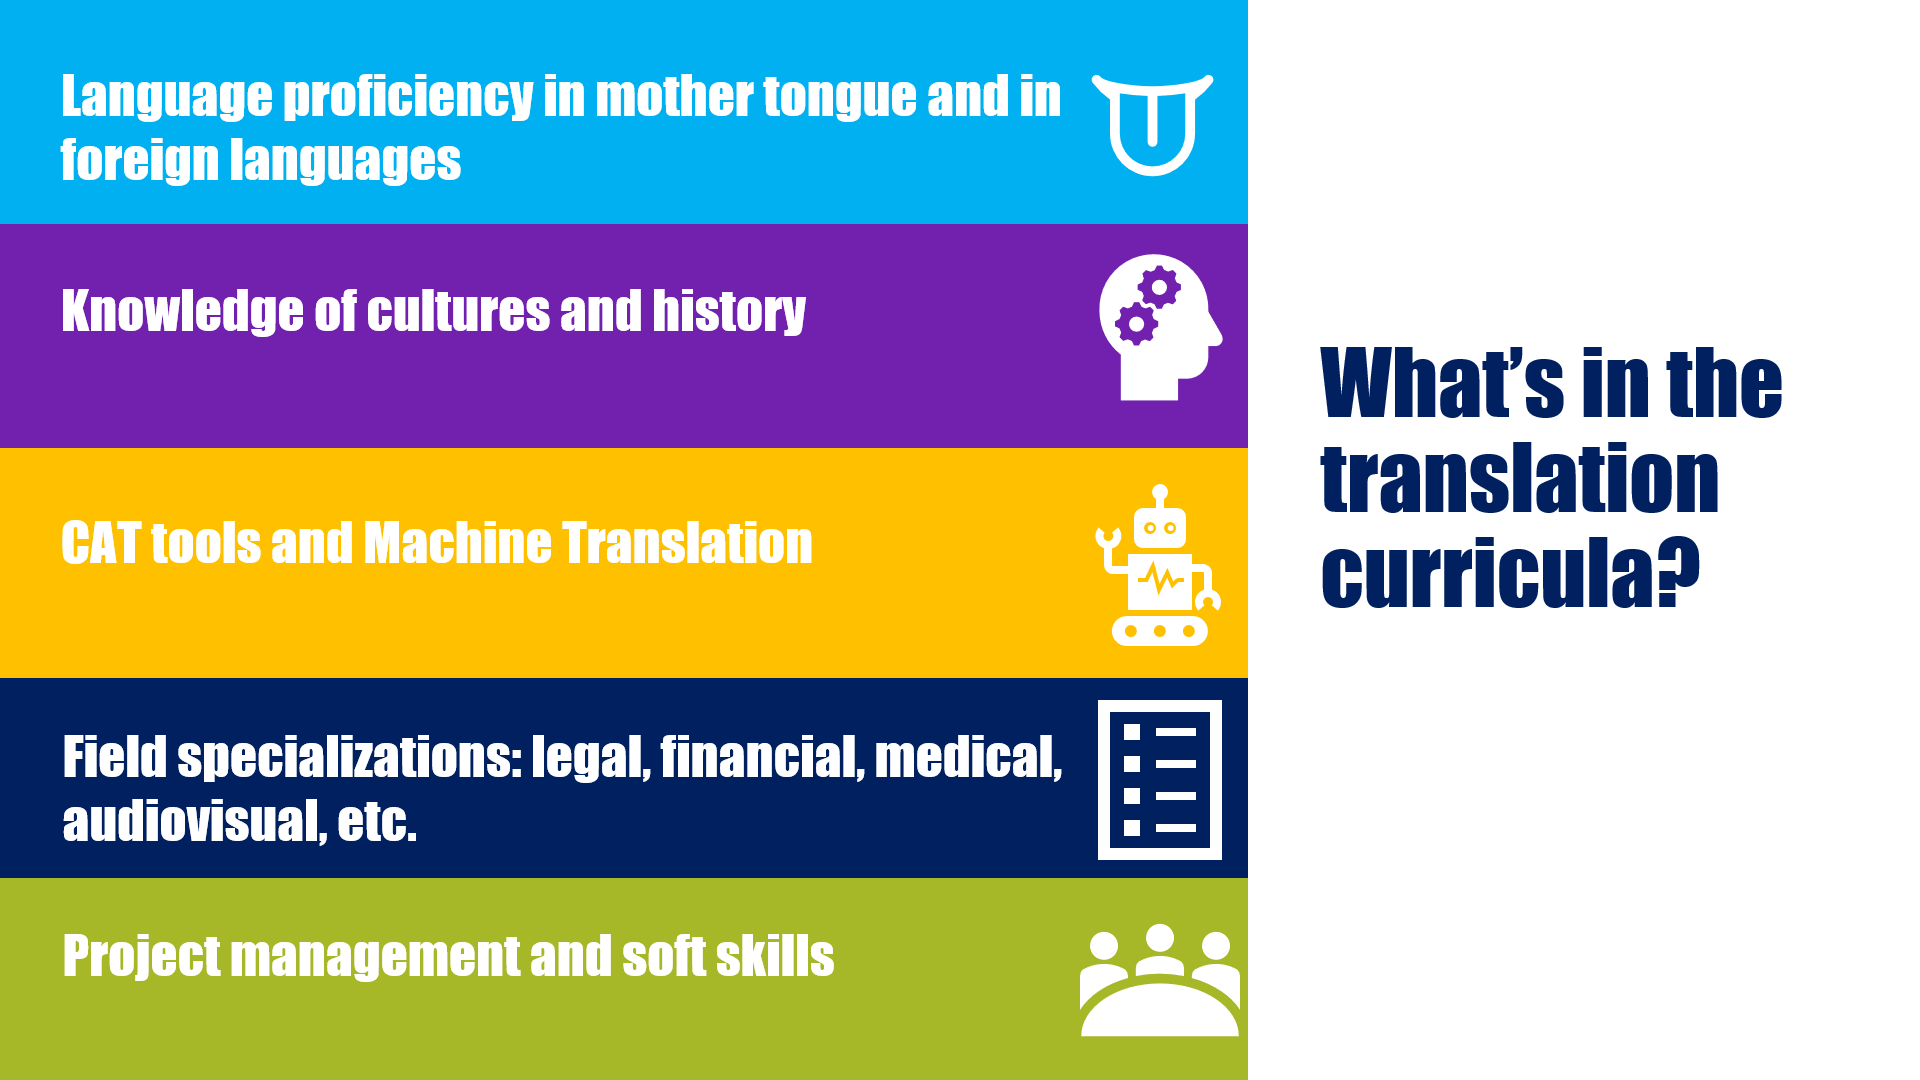 Language proficiency in mother tongue and in foreign languages Knowledge of cultures and history CAT tools and Machine Translation Field specializations: legal, financial, medical, audiovisual, etc. Project management and soft skills What's in the translation curricula?